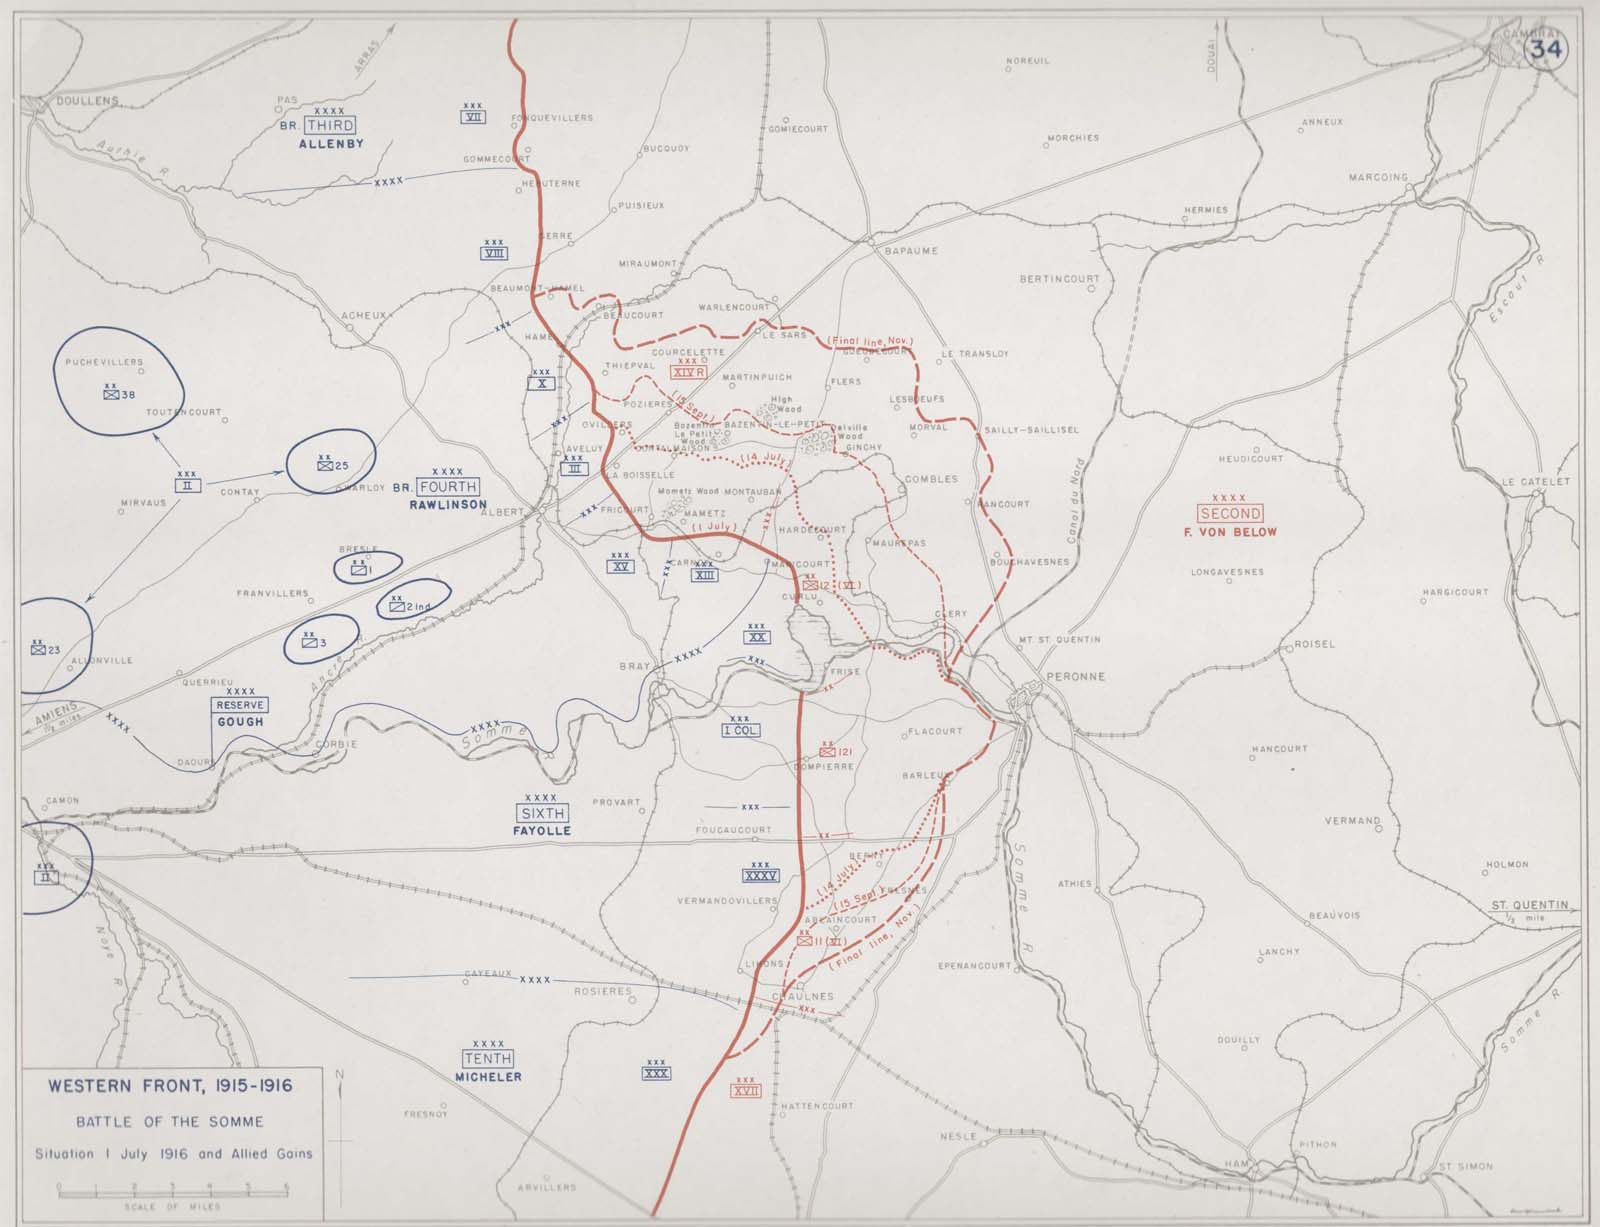 First World War.com - Battlefield Maps: Western Front